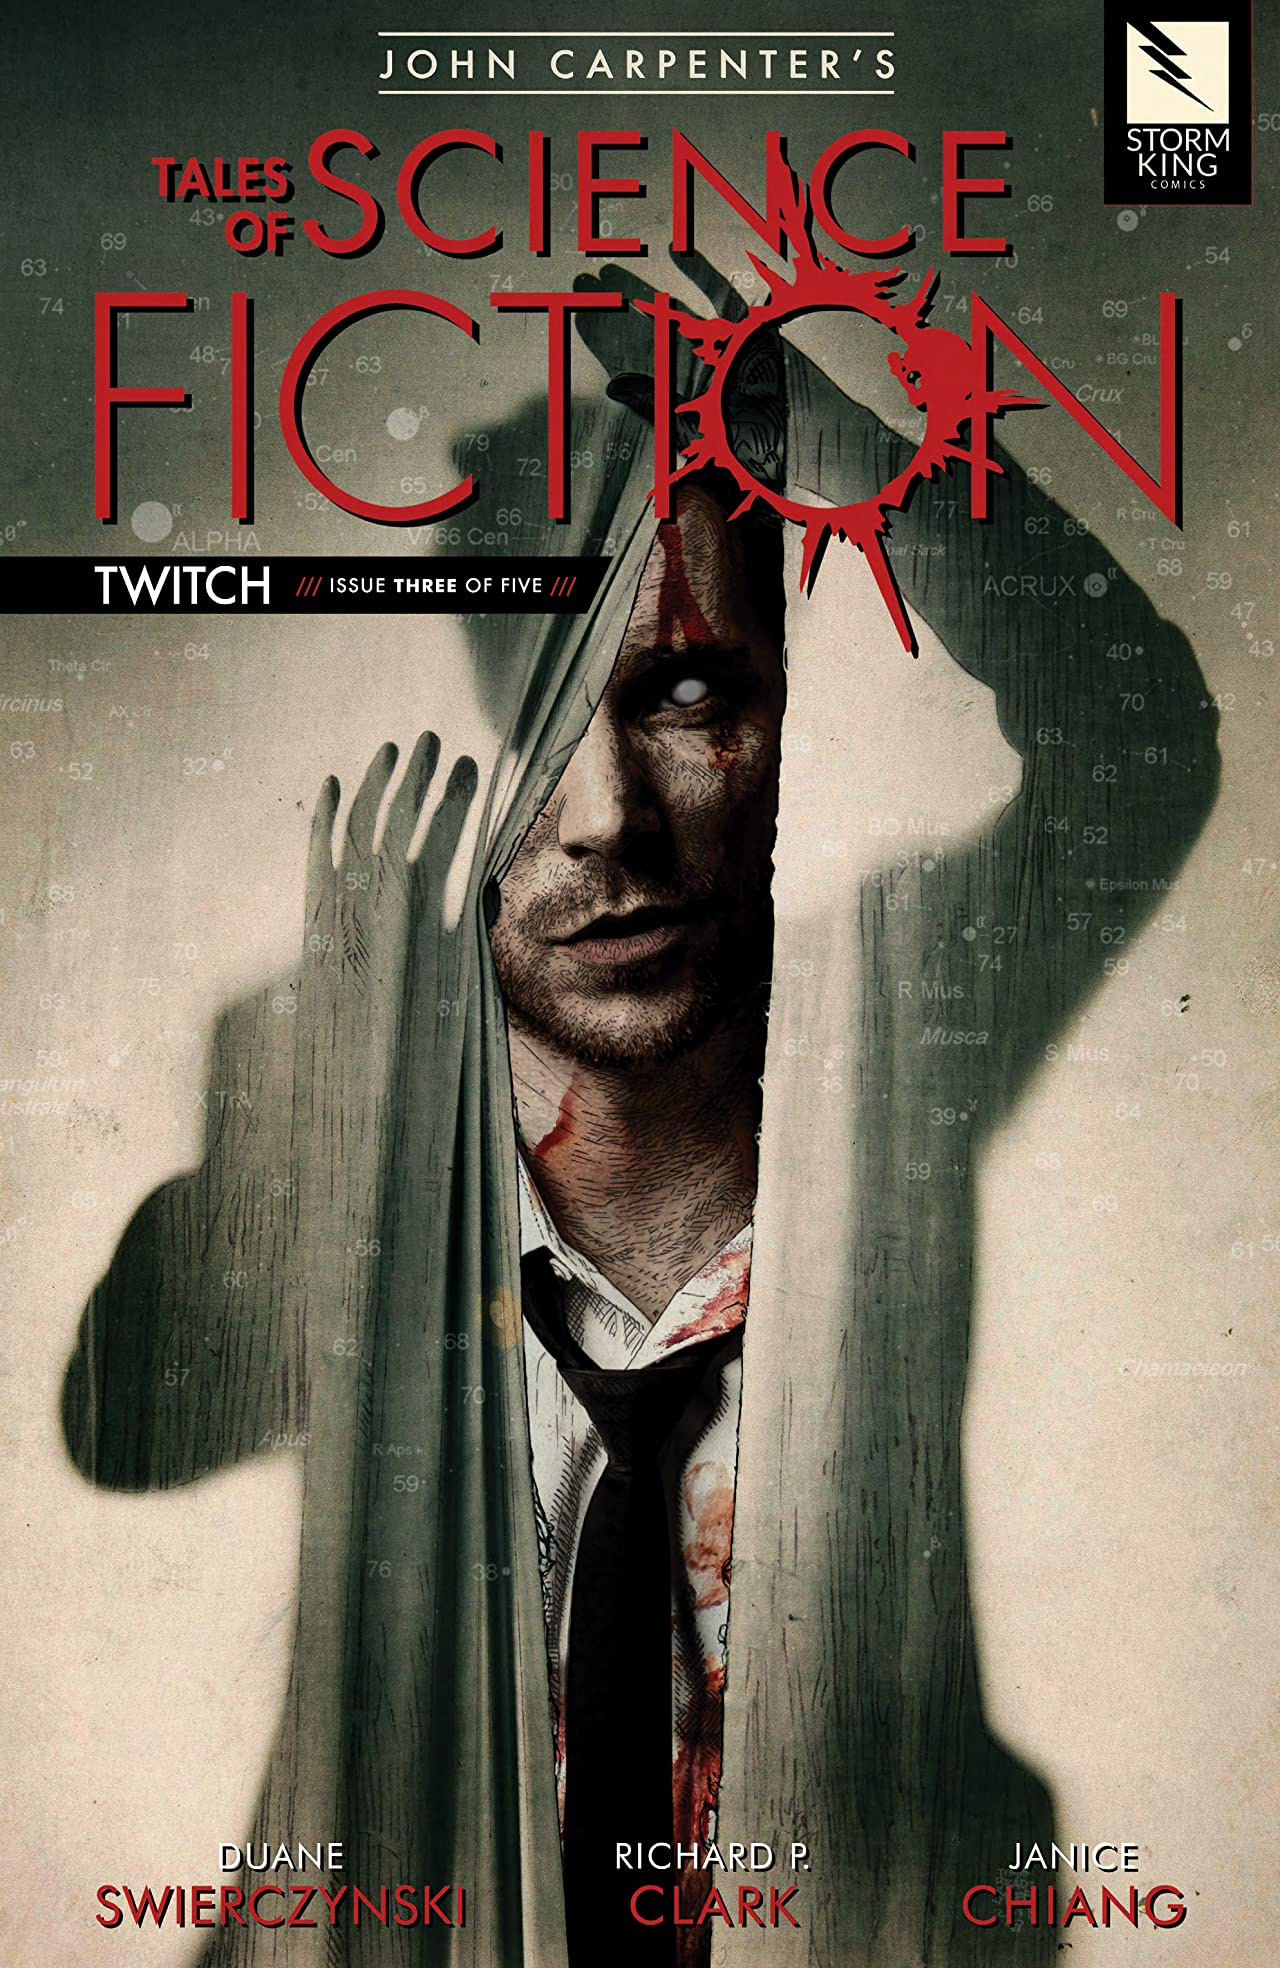 John Carpenter's Tales of Science Fiction: TWITCH #3